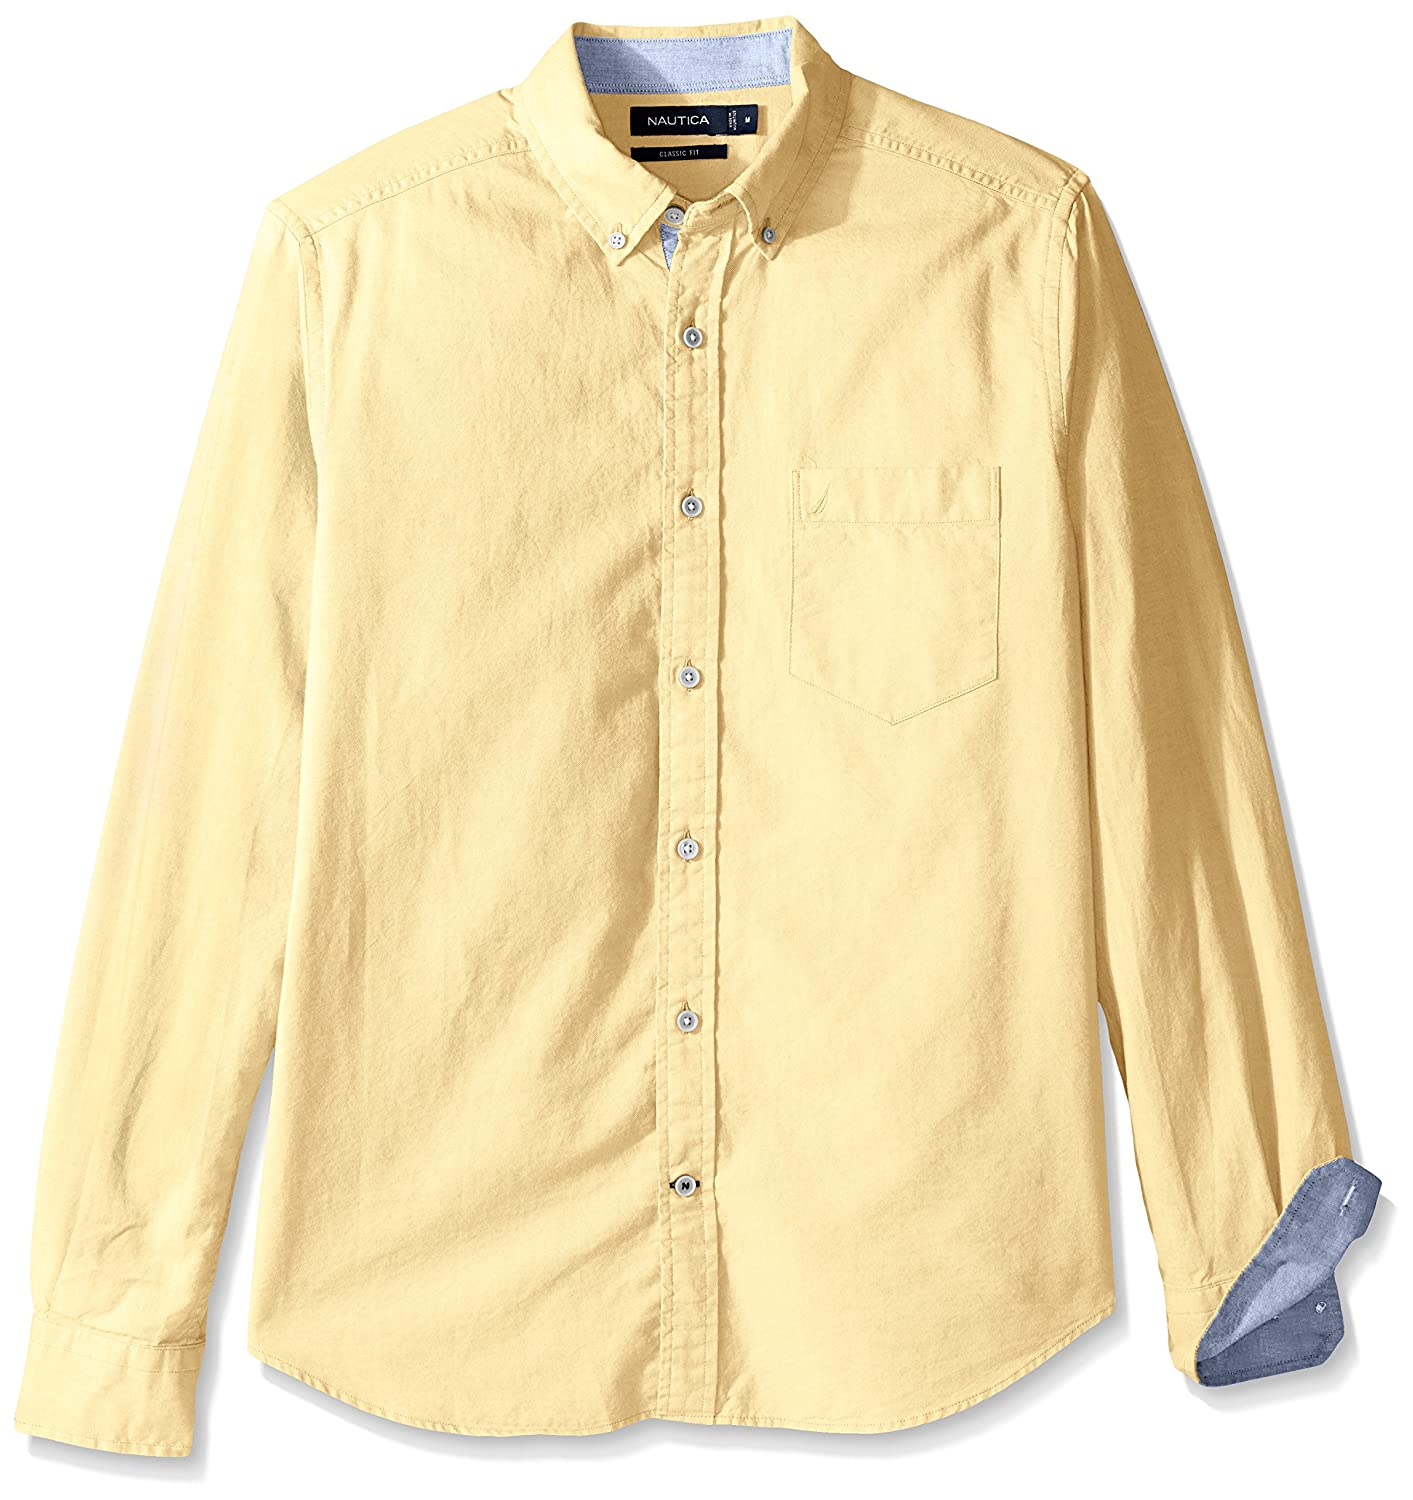 Nautica Long Sleeve Button Down Solid Oxford Shirt